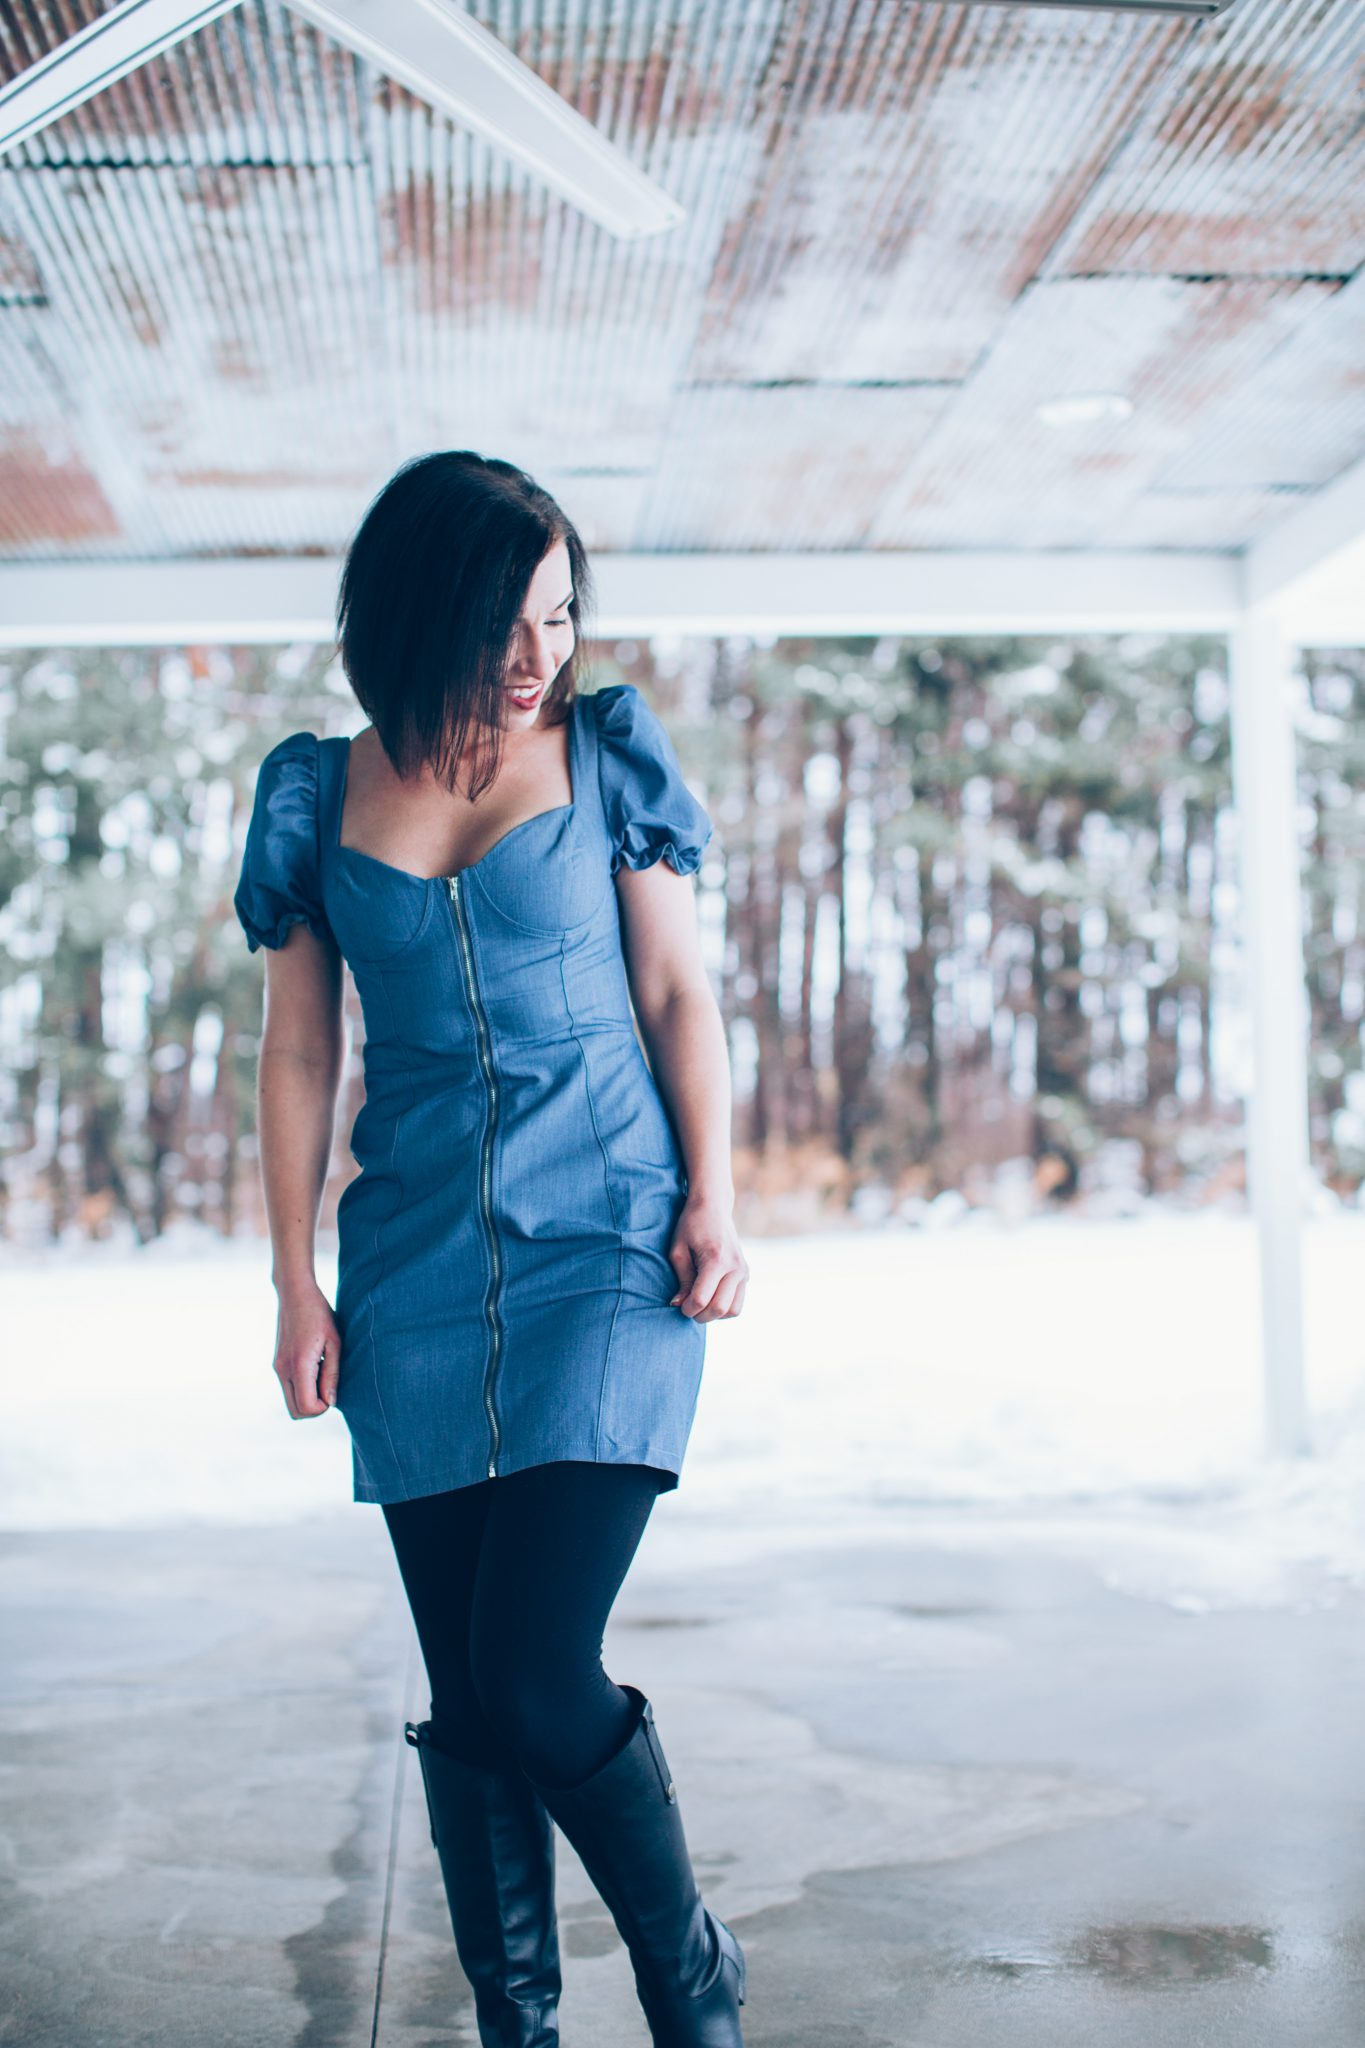 Trying Trends – Styling a Denim Skirt & Dress With Leggings + Boots for Winter